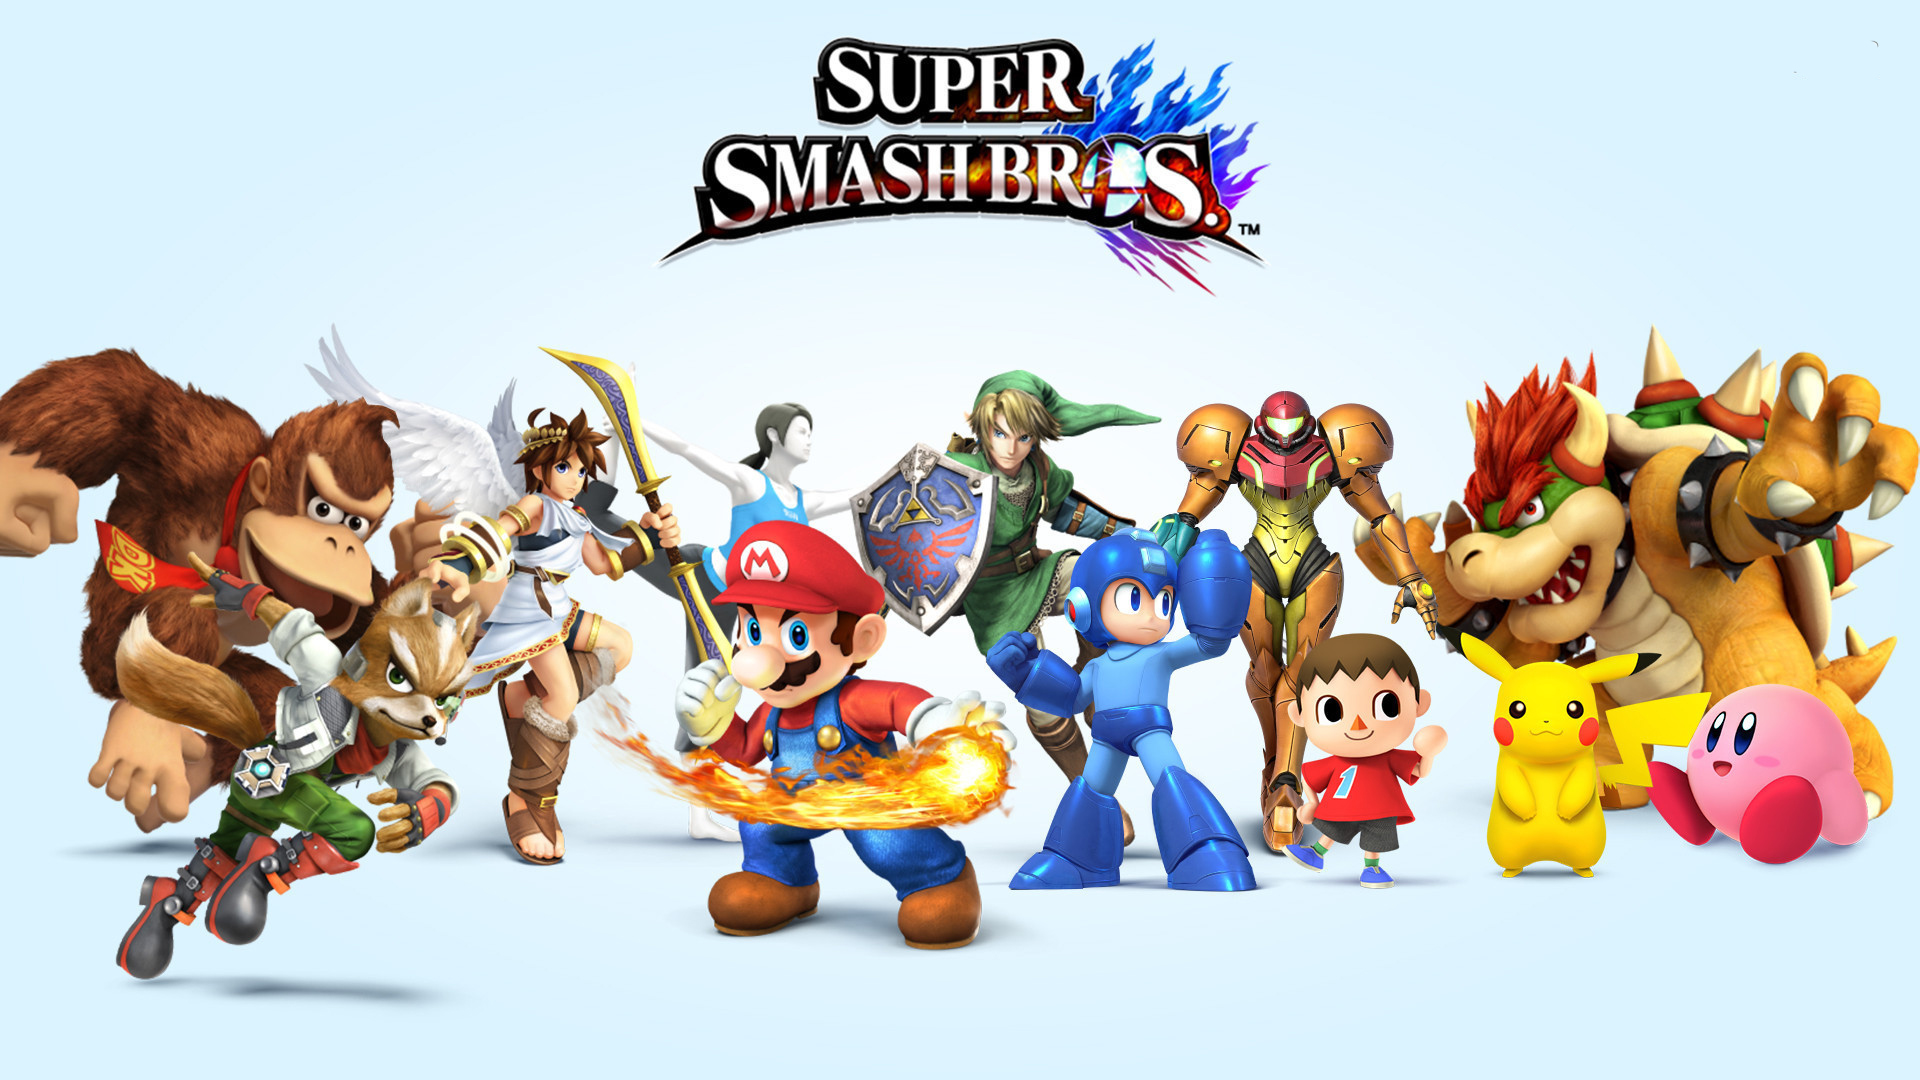 super-smash-bros-4-24158-1920x1080